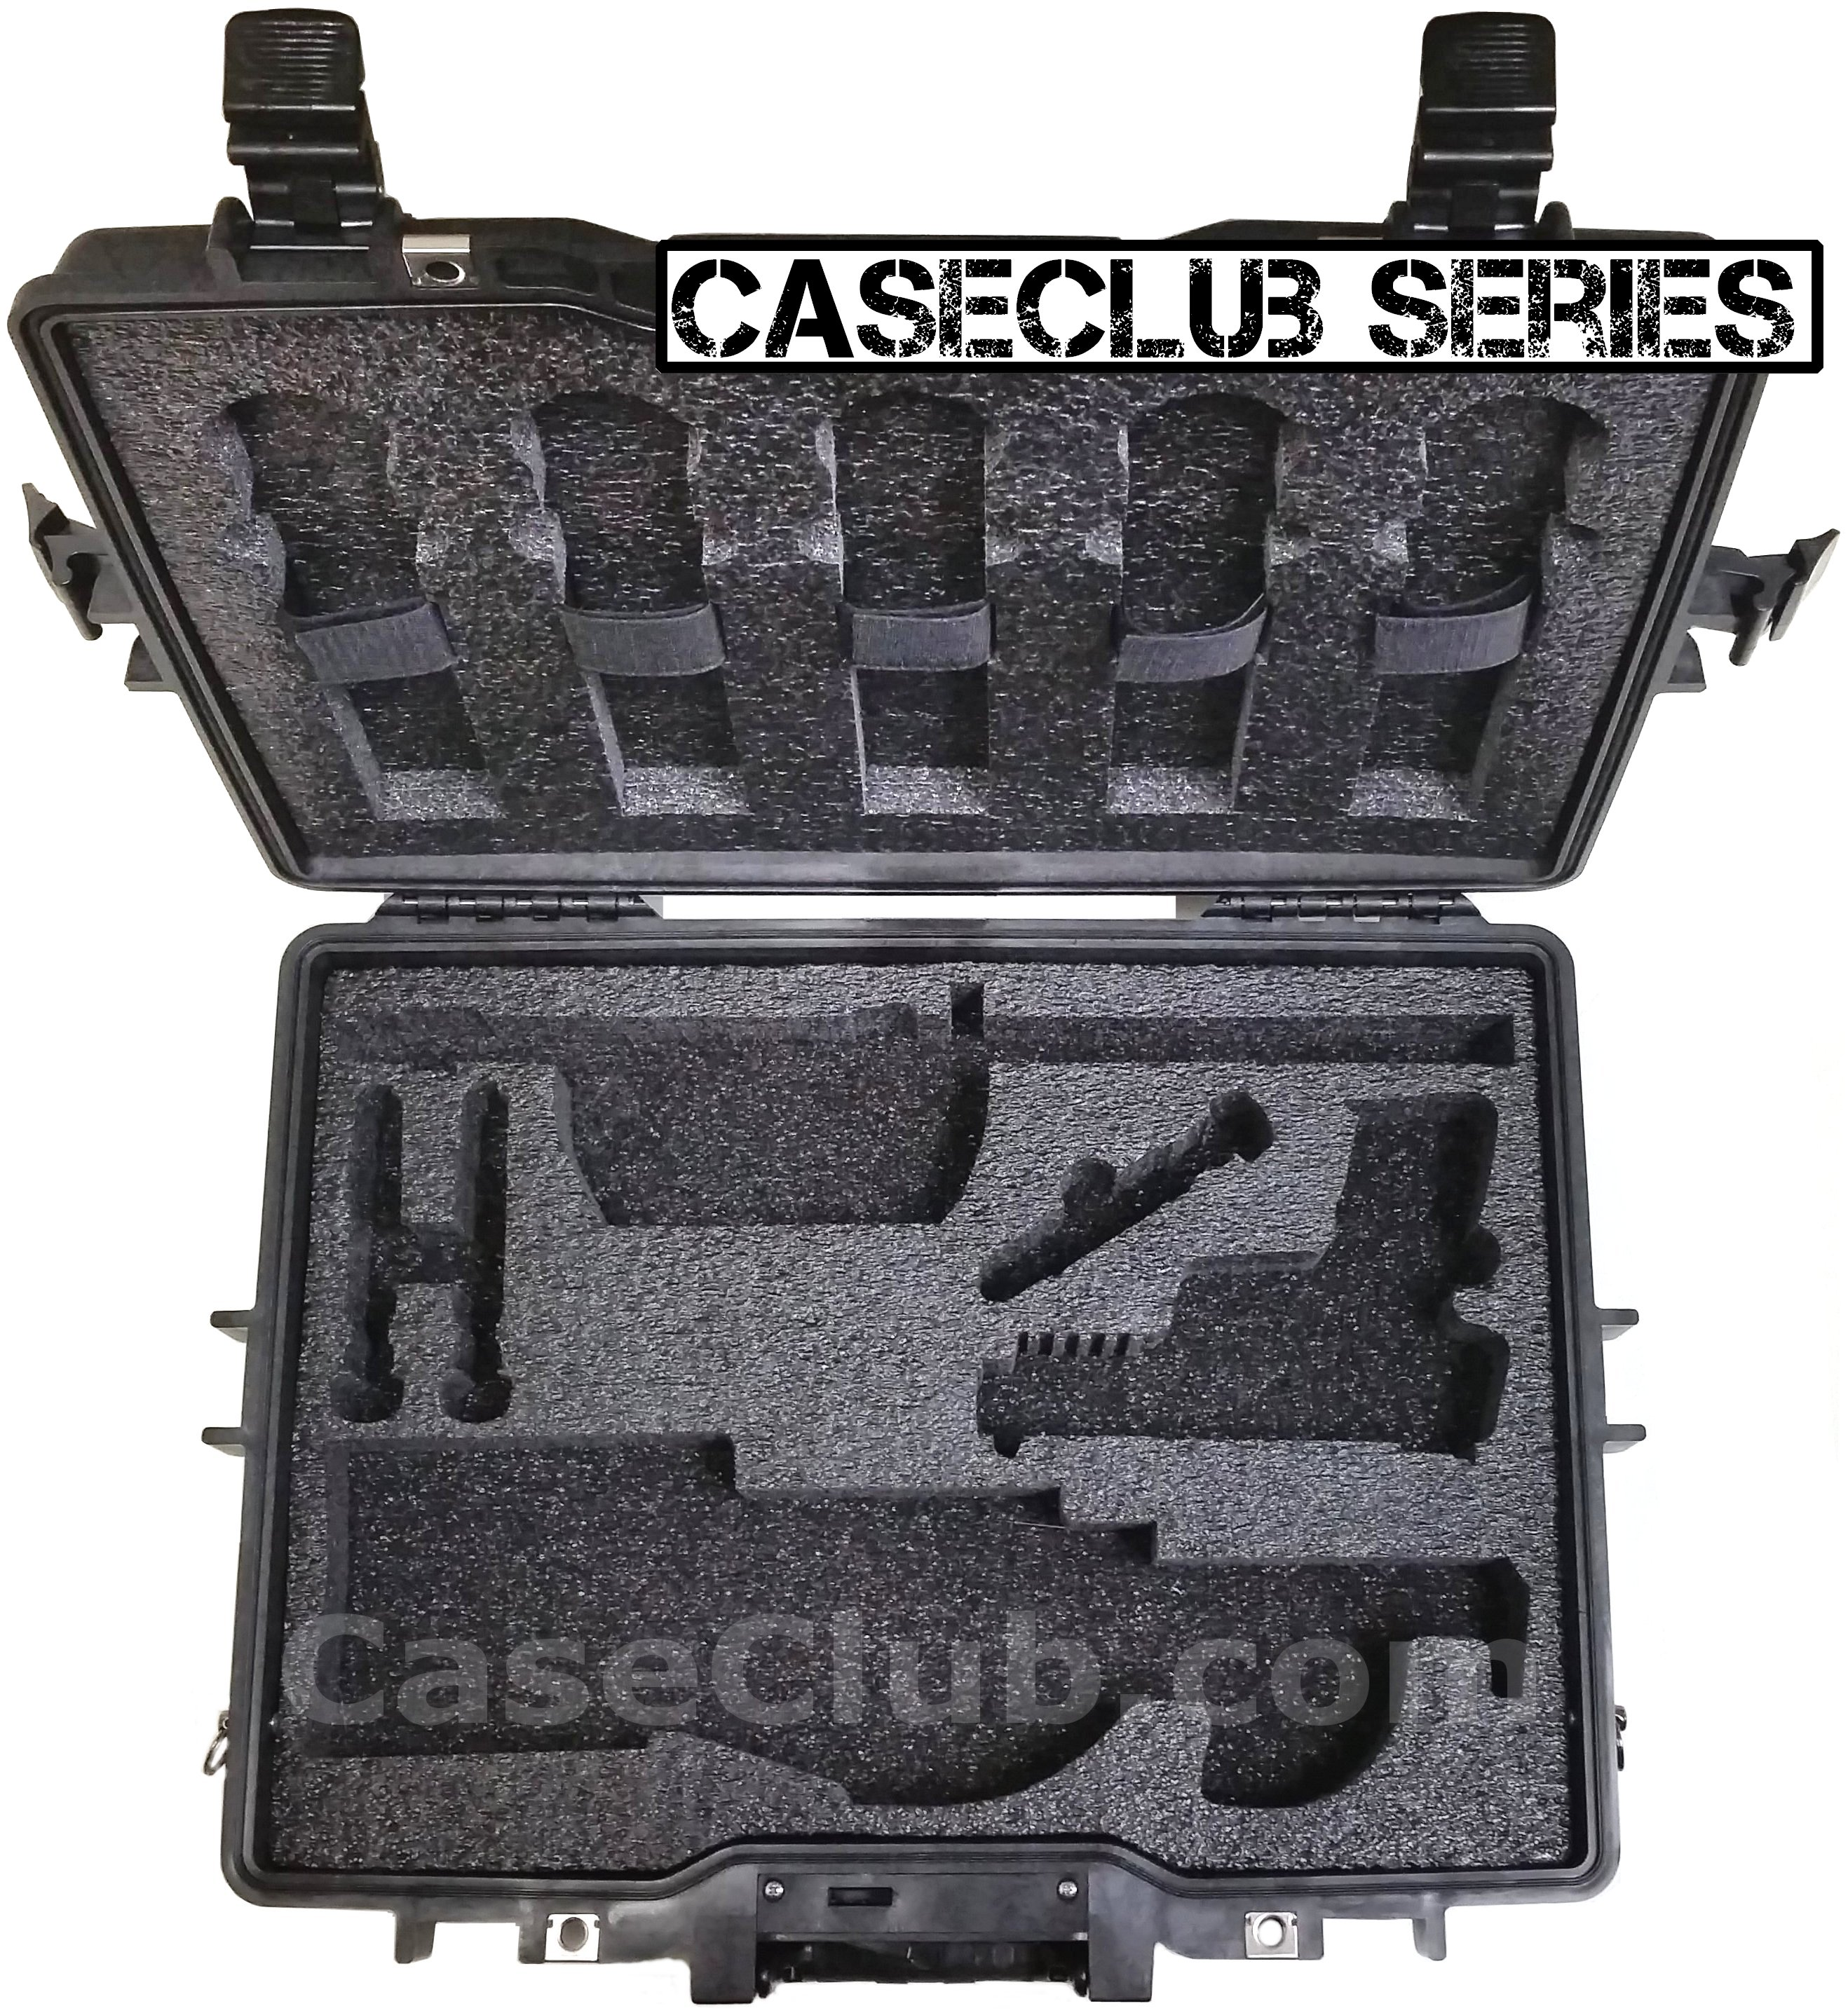 Ps90 For Sale >> Case Club Waterproof Breakdown FN PS90 Rifle Case with Silica Gel